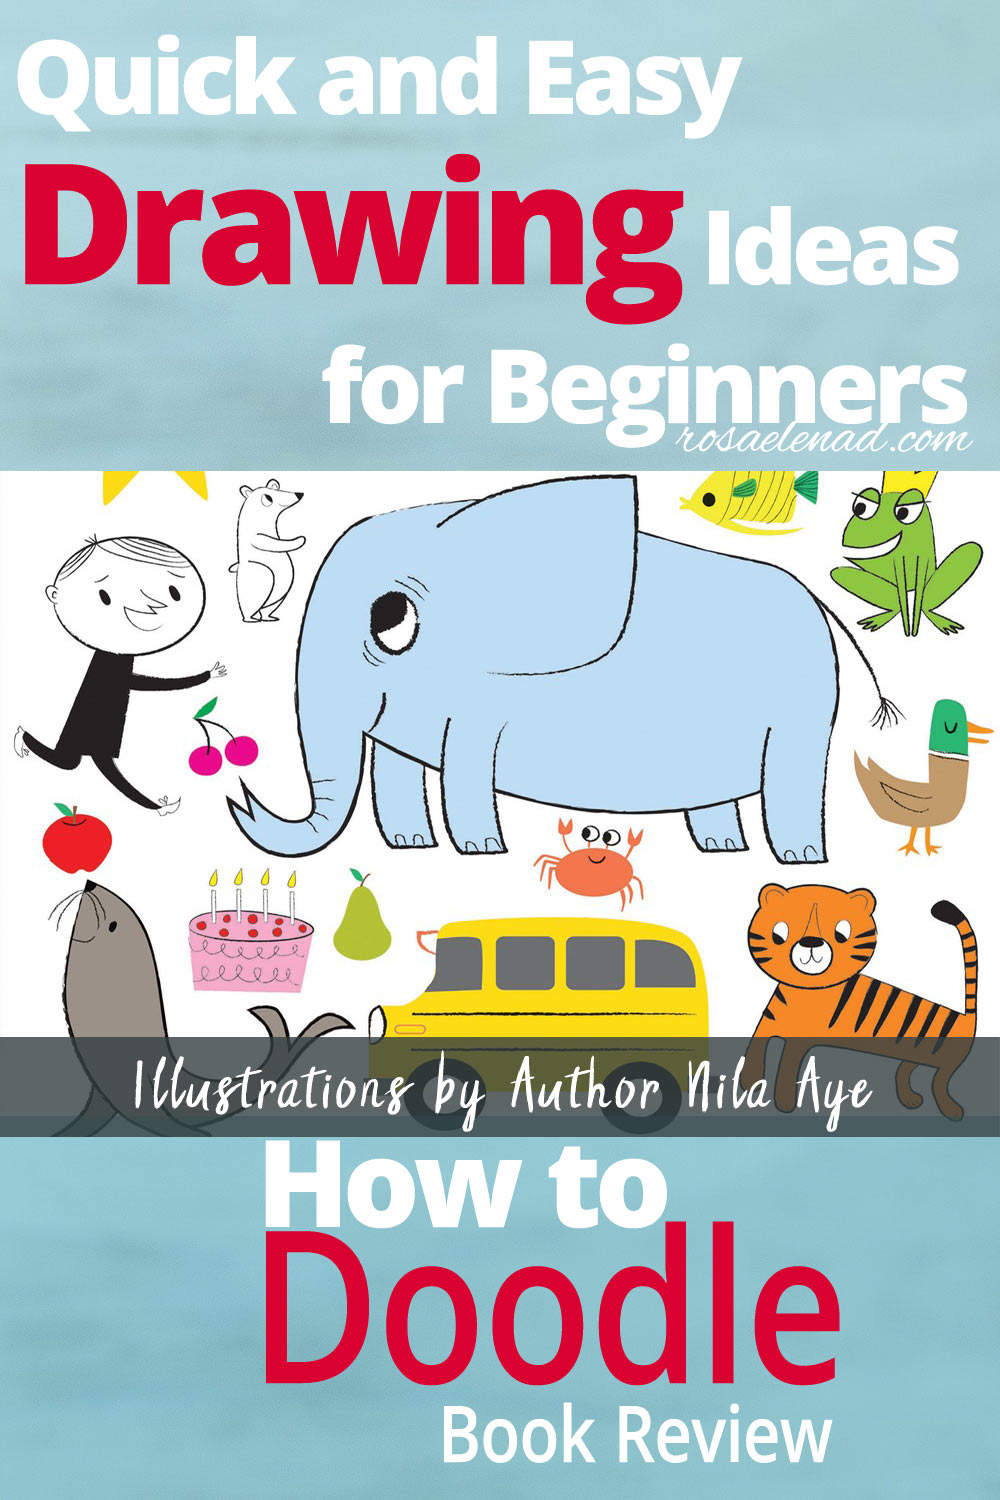 How To Doodle Quick And Easy Drawing Ideas For Beginners Rosa